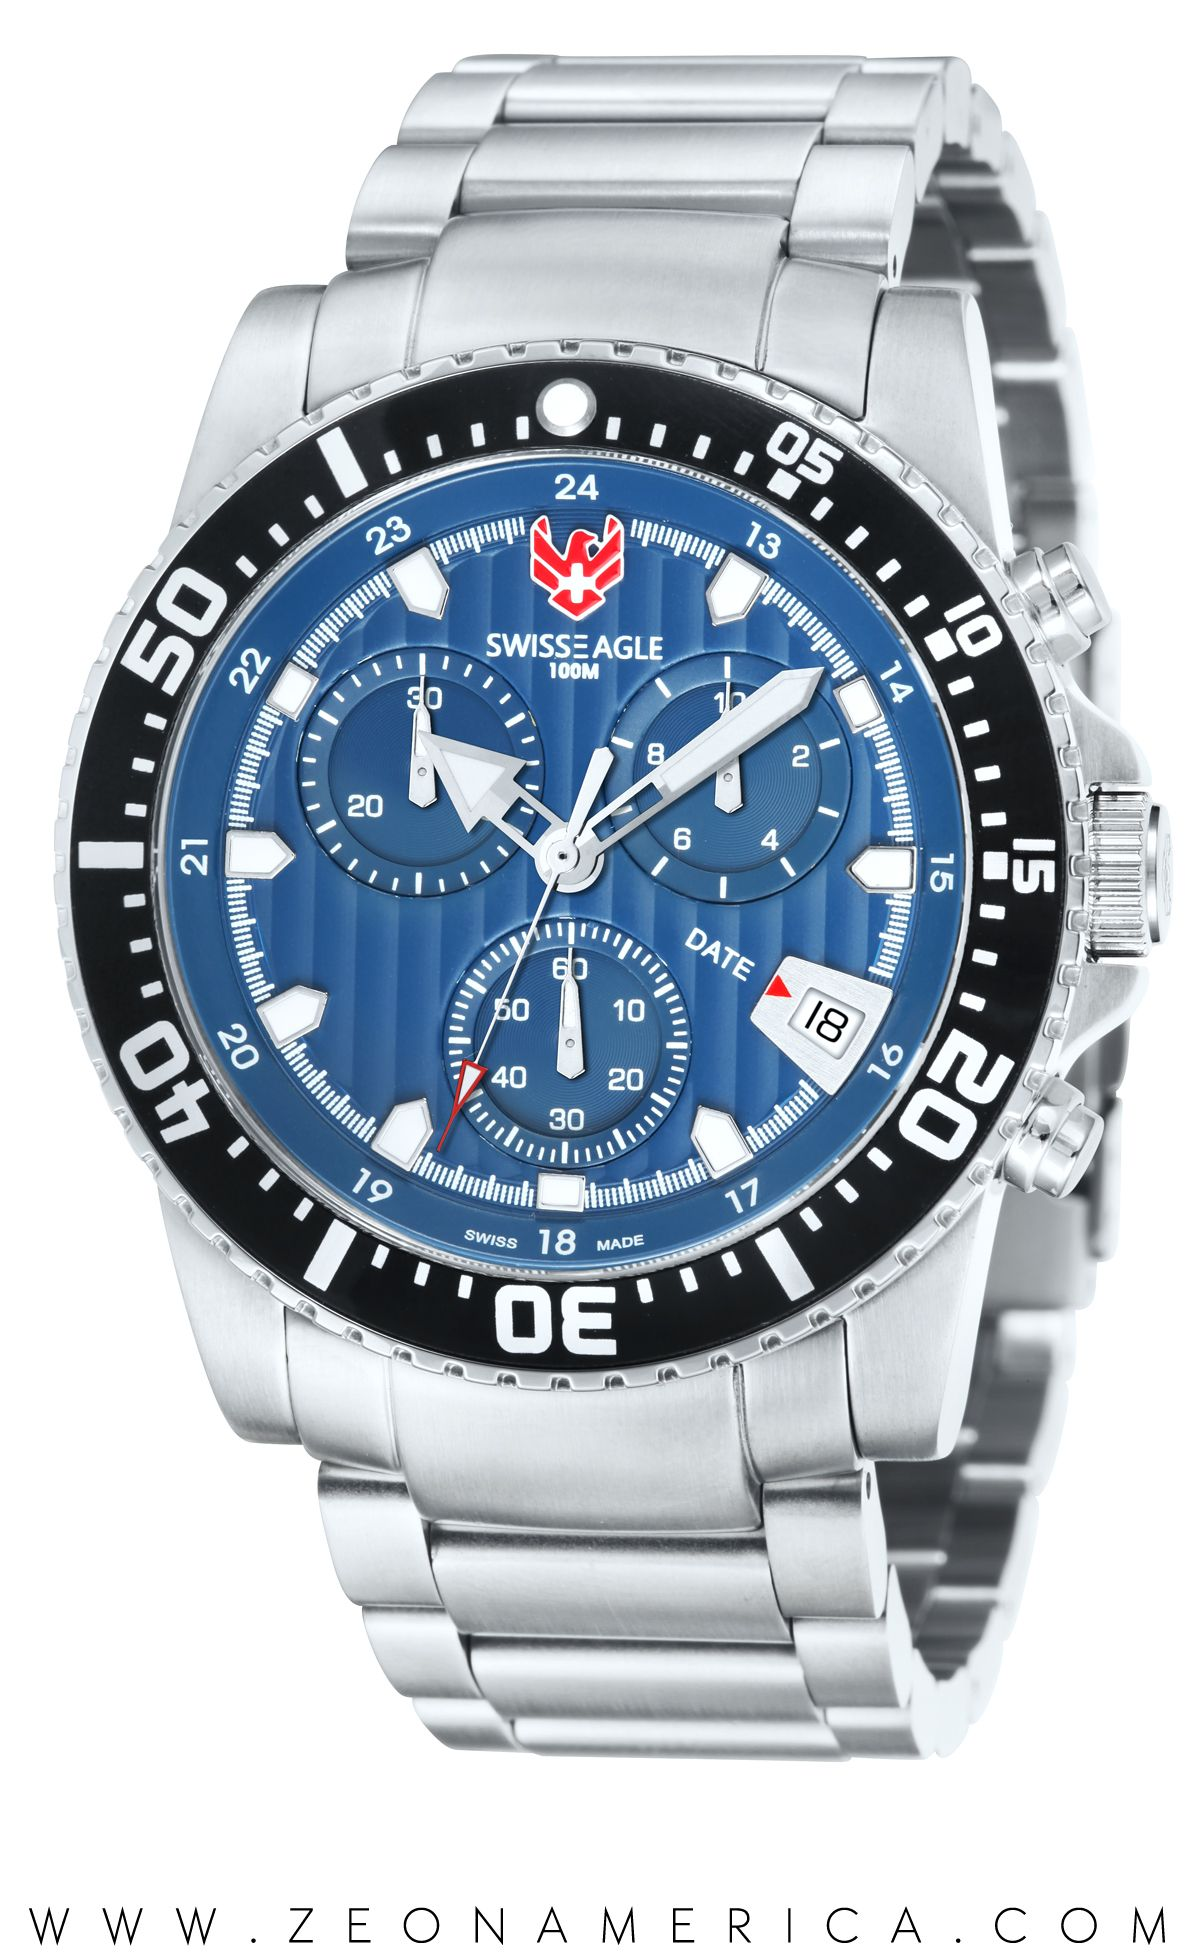 review the a and folks be you think variety your right of this img wrist i like should for if watch up swiss one details altitude would watches dial alley eagle good